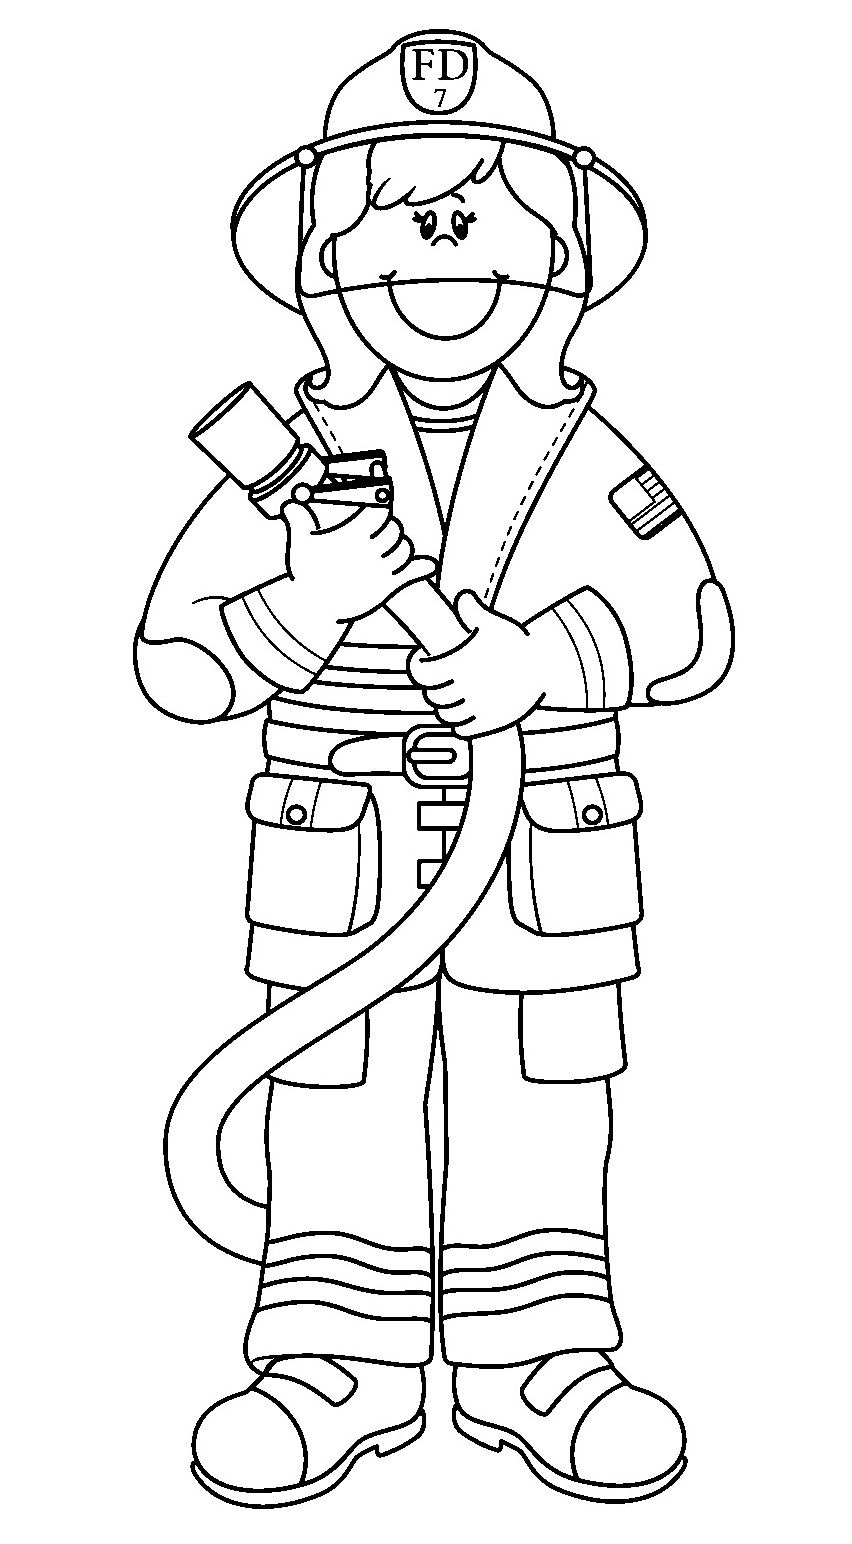 Printable coloring pages firefighter. Fireman clipart colouring page